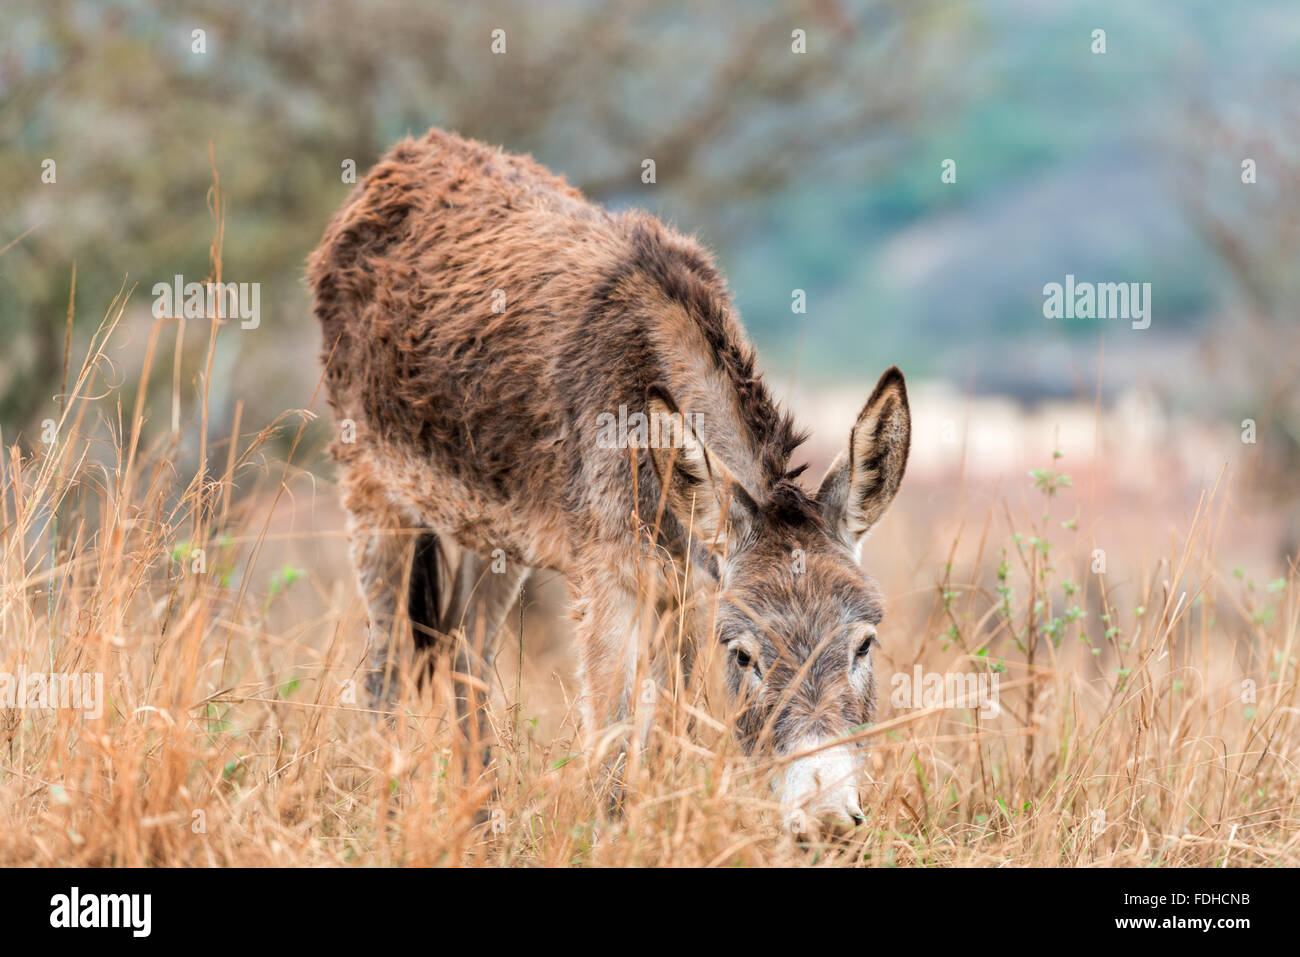 Donkey (Equus africanus asinus) grazing in a field in the Hhohho region of Swaziland, Africa. - Stock Image